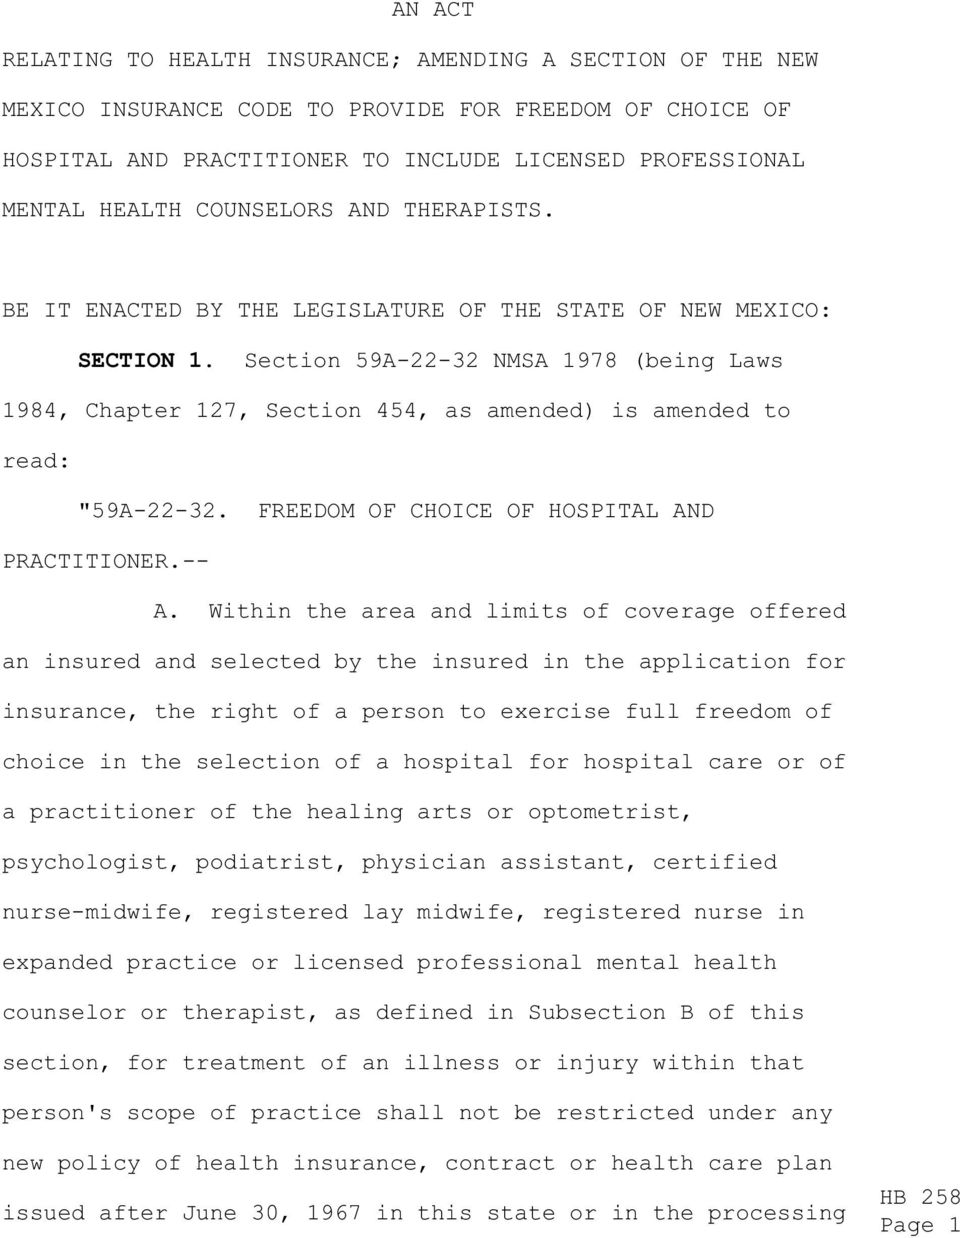 "Section 59A-22-32 NMSA 1978 (being Laws 1984, Chapter 127, Section 454, as amended) is amended to read: ""59A-22-32. FREEDOM OF CHOICE OF HOSPITAL AND PRACTITIONER.-- A."